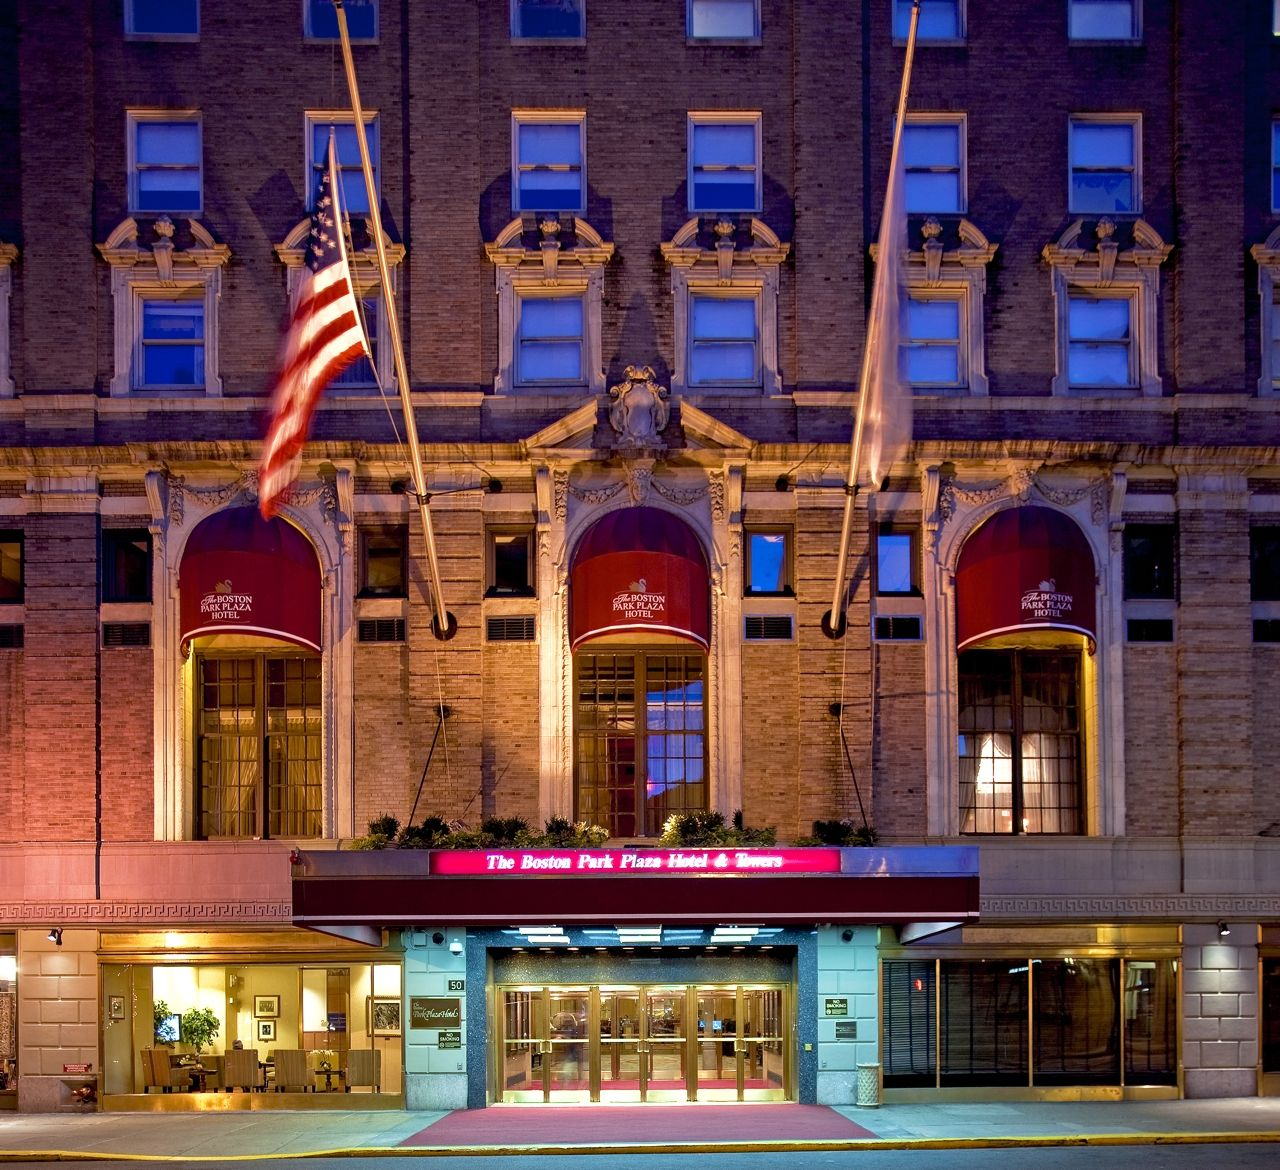 Boston Vacations Ideas: Boston -- Park Plaza Hotel & Towers -- Fabulous Place To